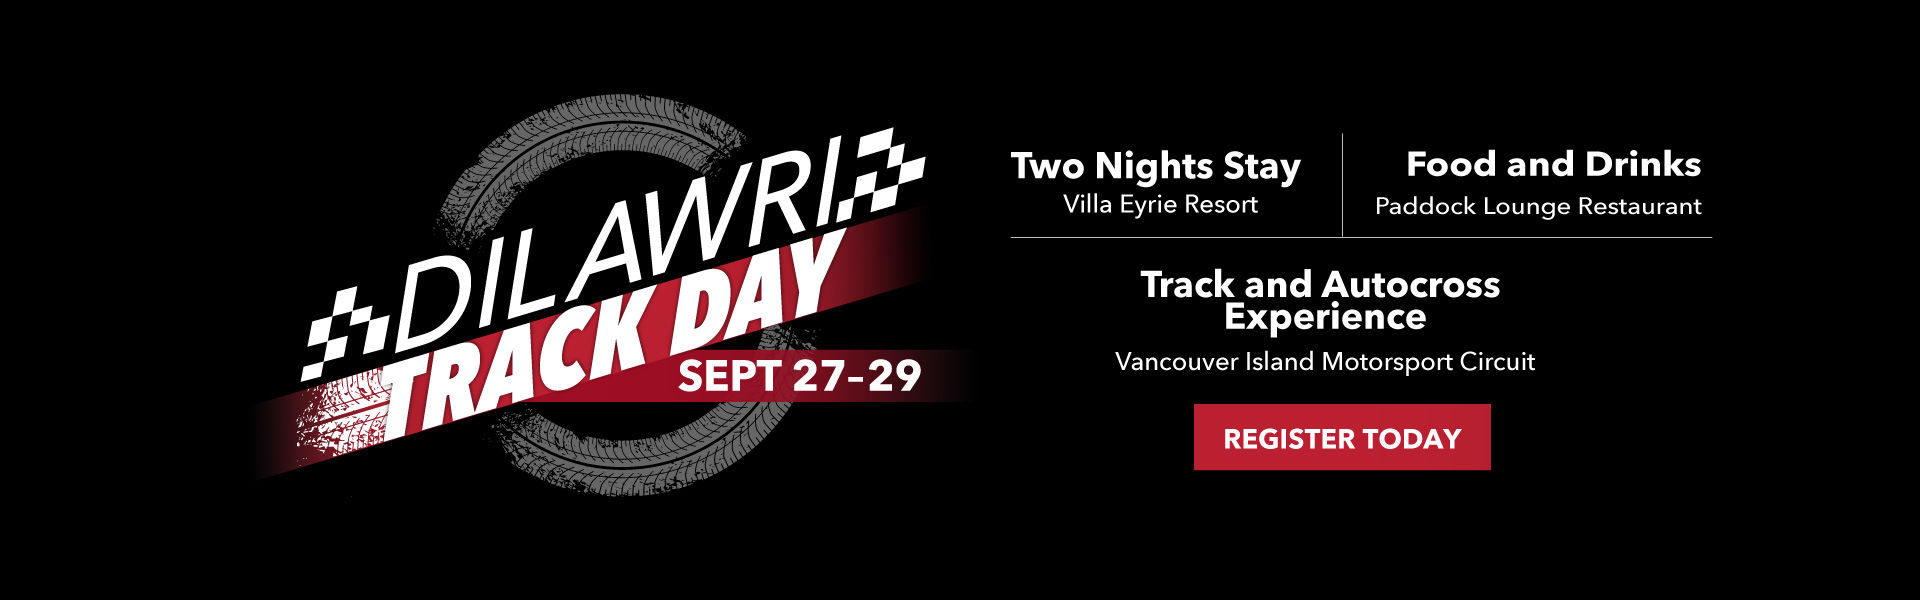 Dilawri Track Day 2019 | Sept 27 - 29 | Limited space available!